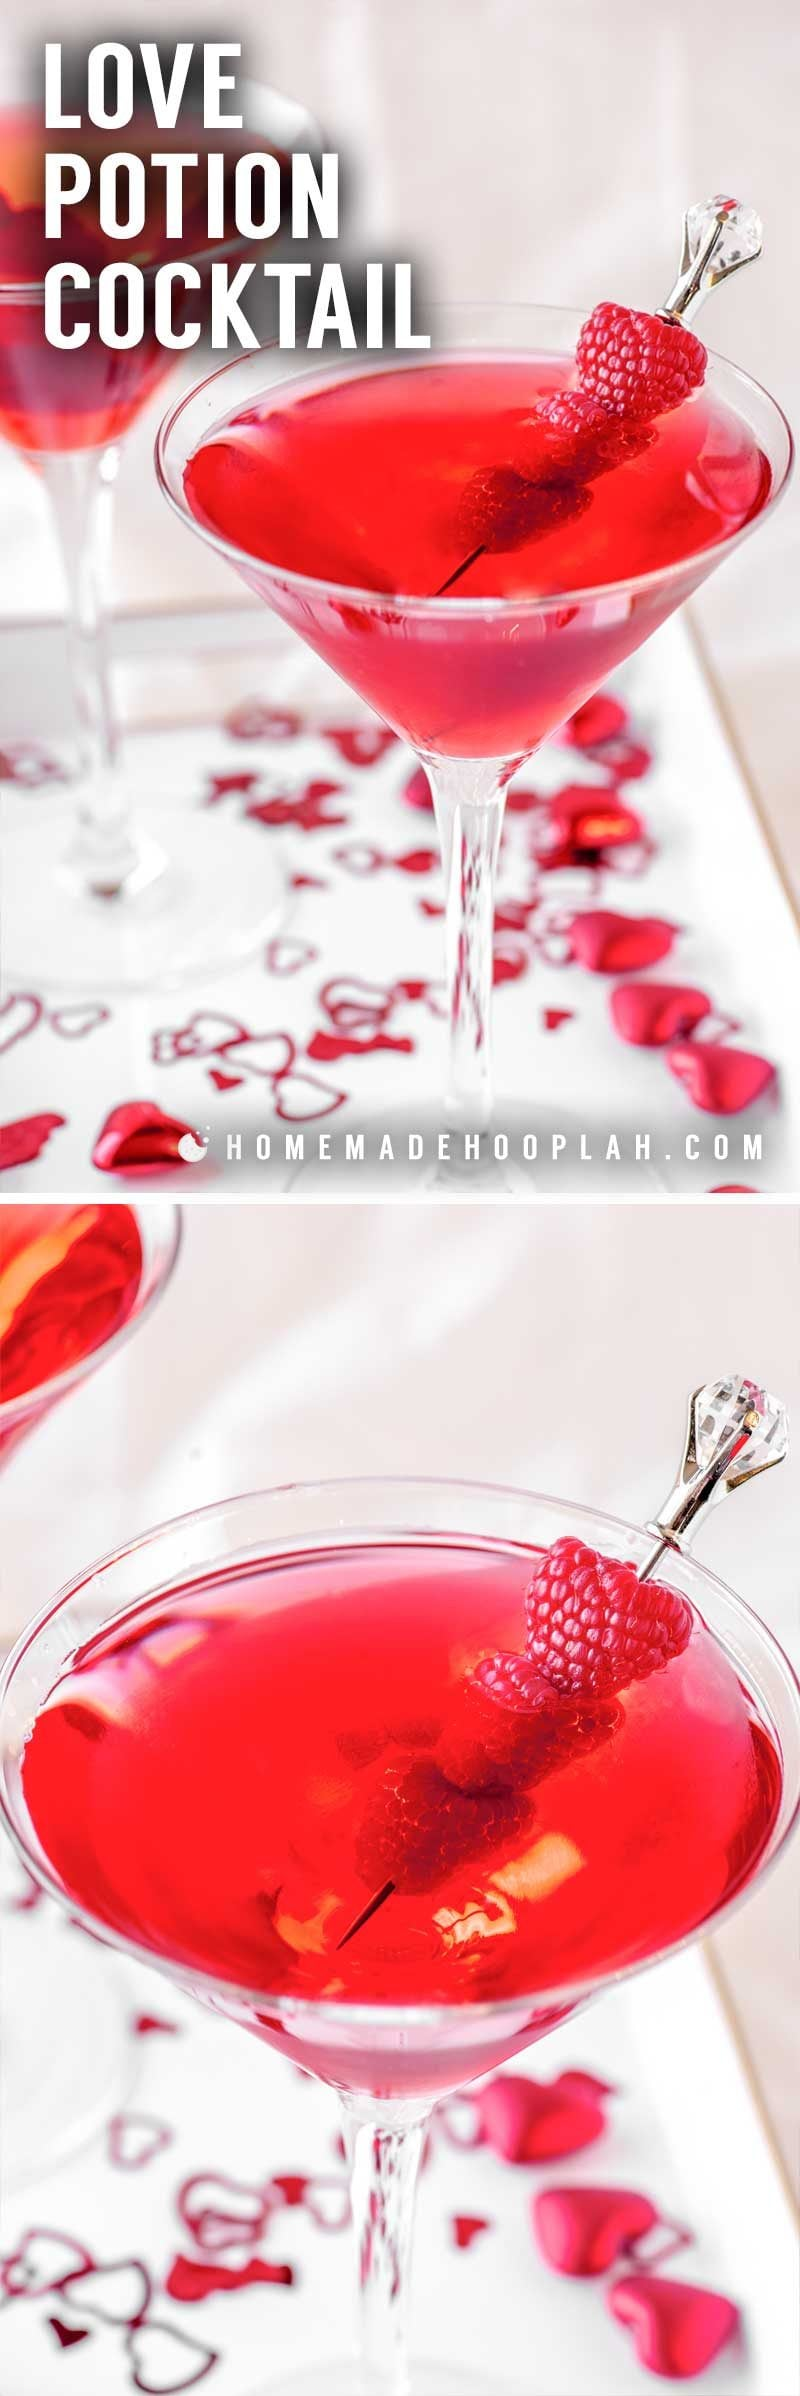 Recipe for a festive red cocktail for valentine's day